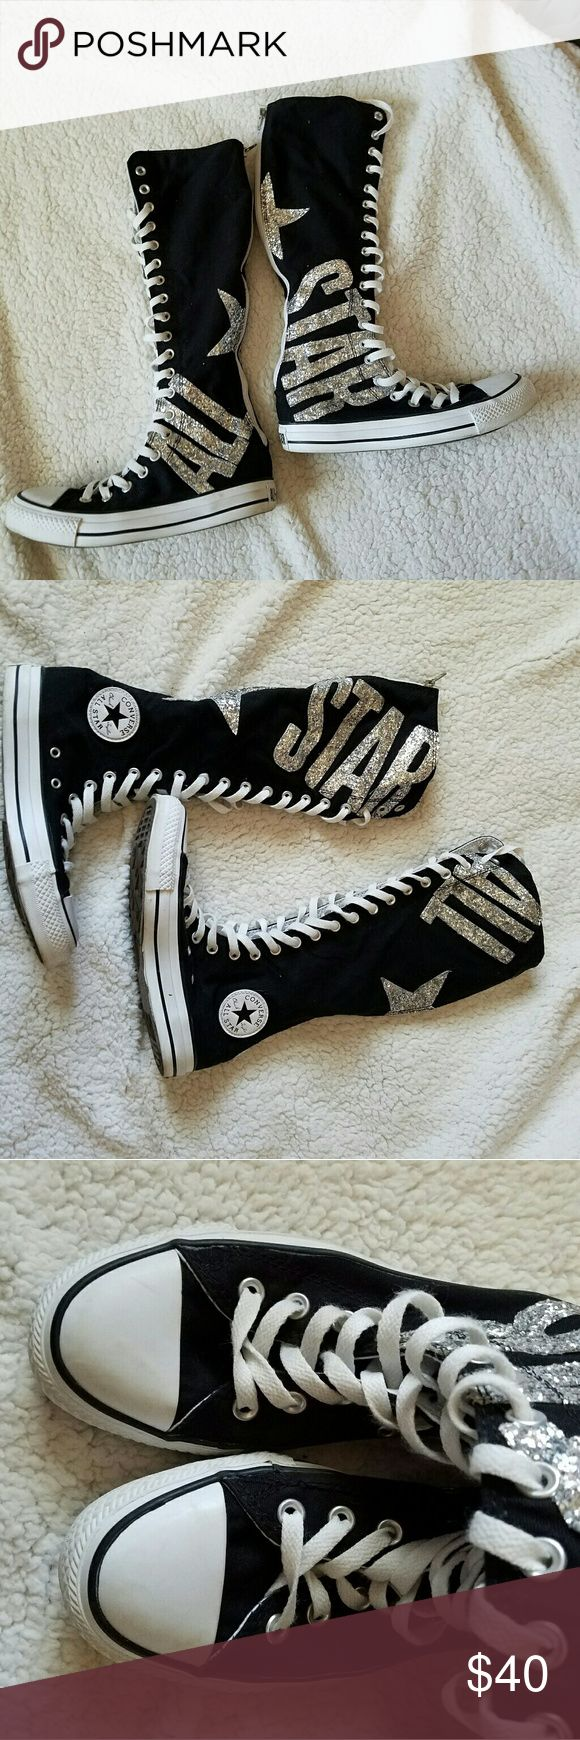 Converse Knee High Bling Chucks Sneakers XX II Size 5. Perfect Shape.  Lace up front, zip up back.  Black with silver glitter. Converse Shoes Lace Up Boots